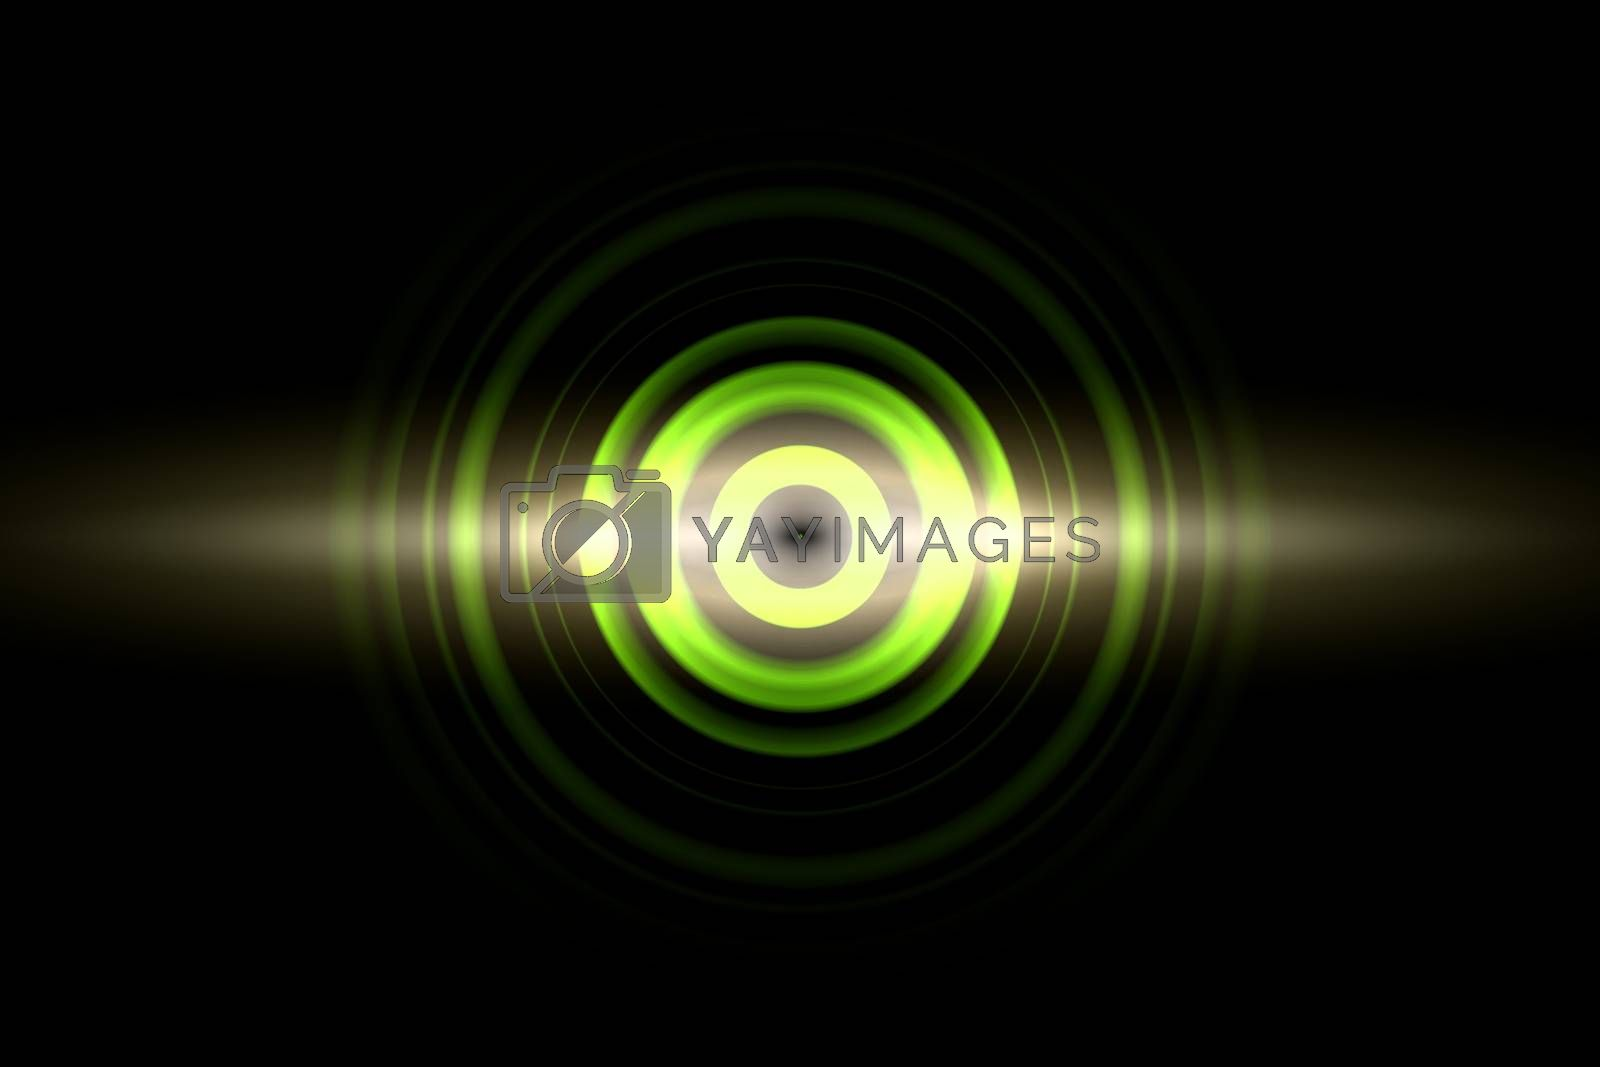 Sound waves oscillating green light with circle spin, abstract background by mouu007